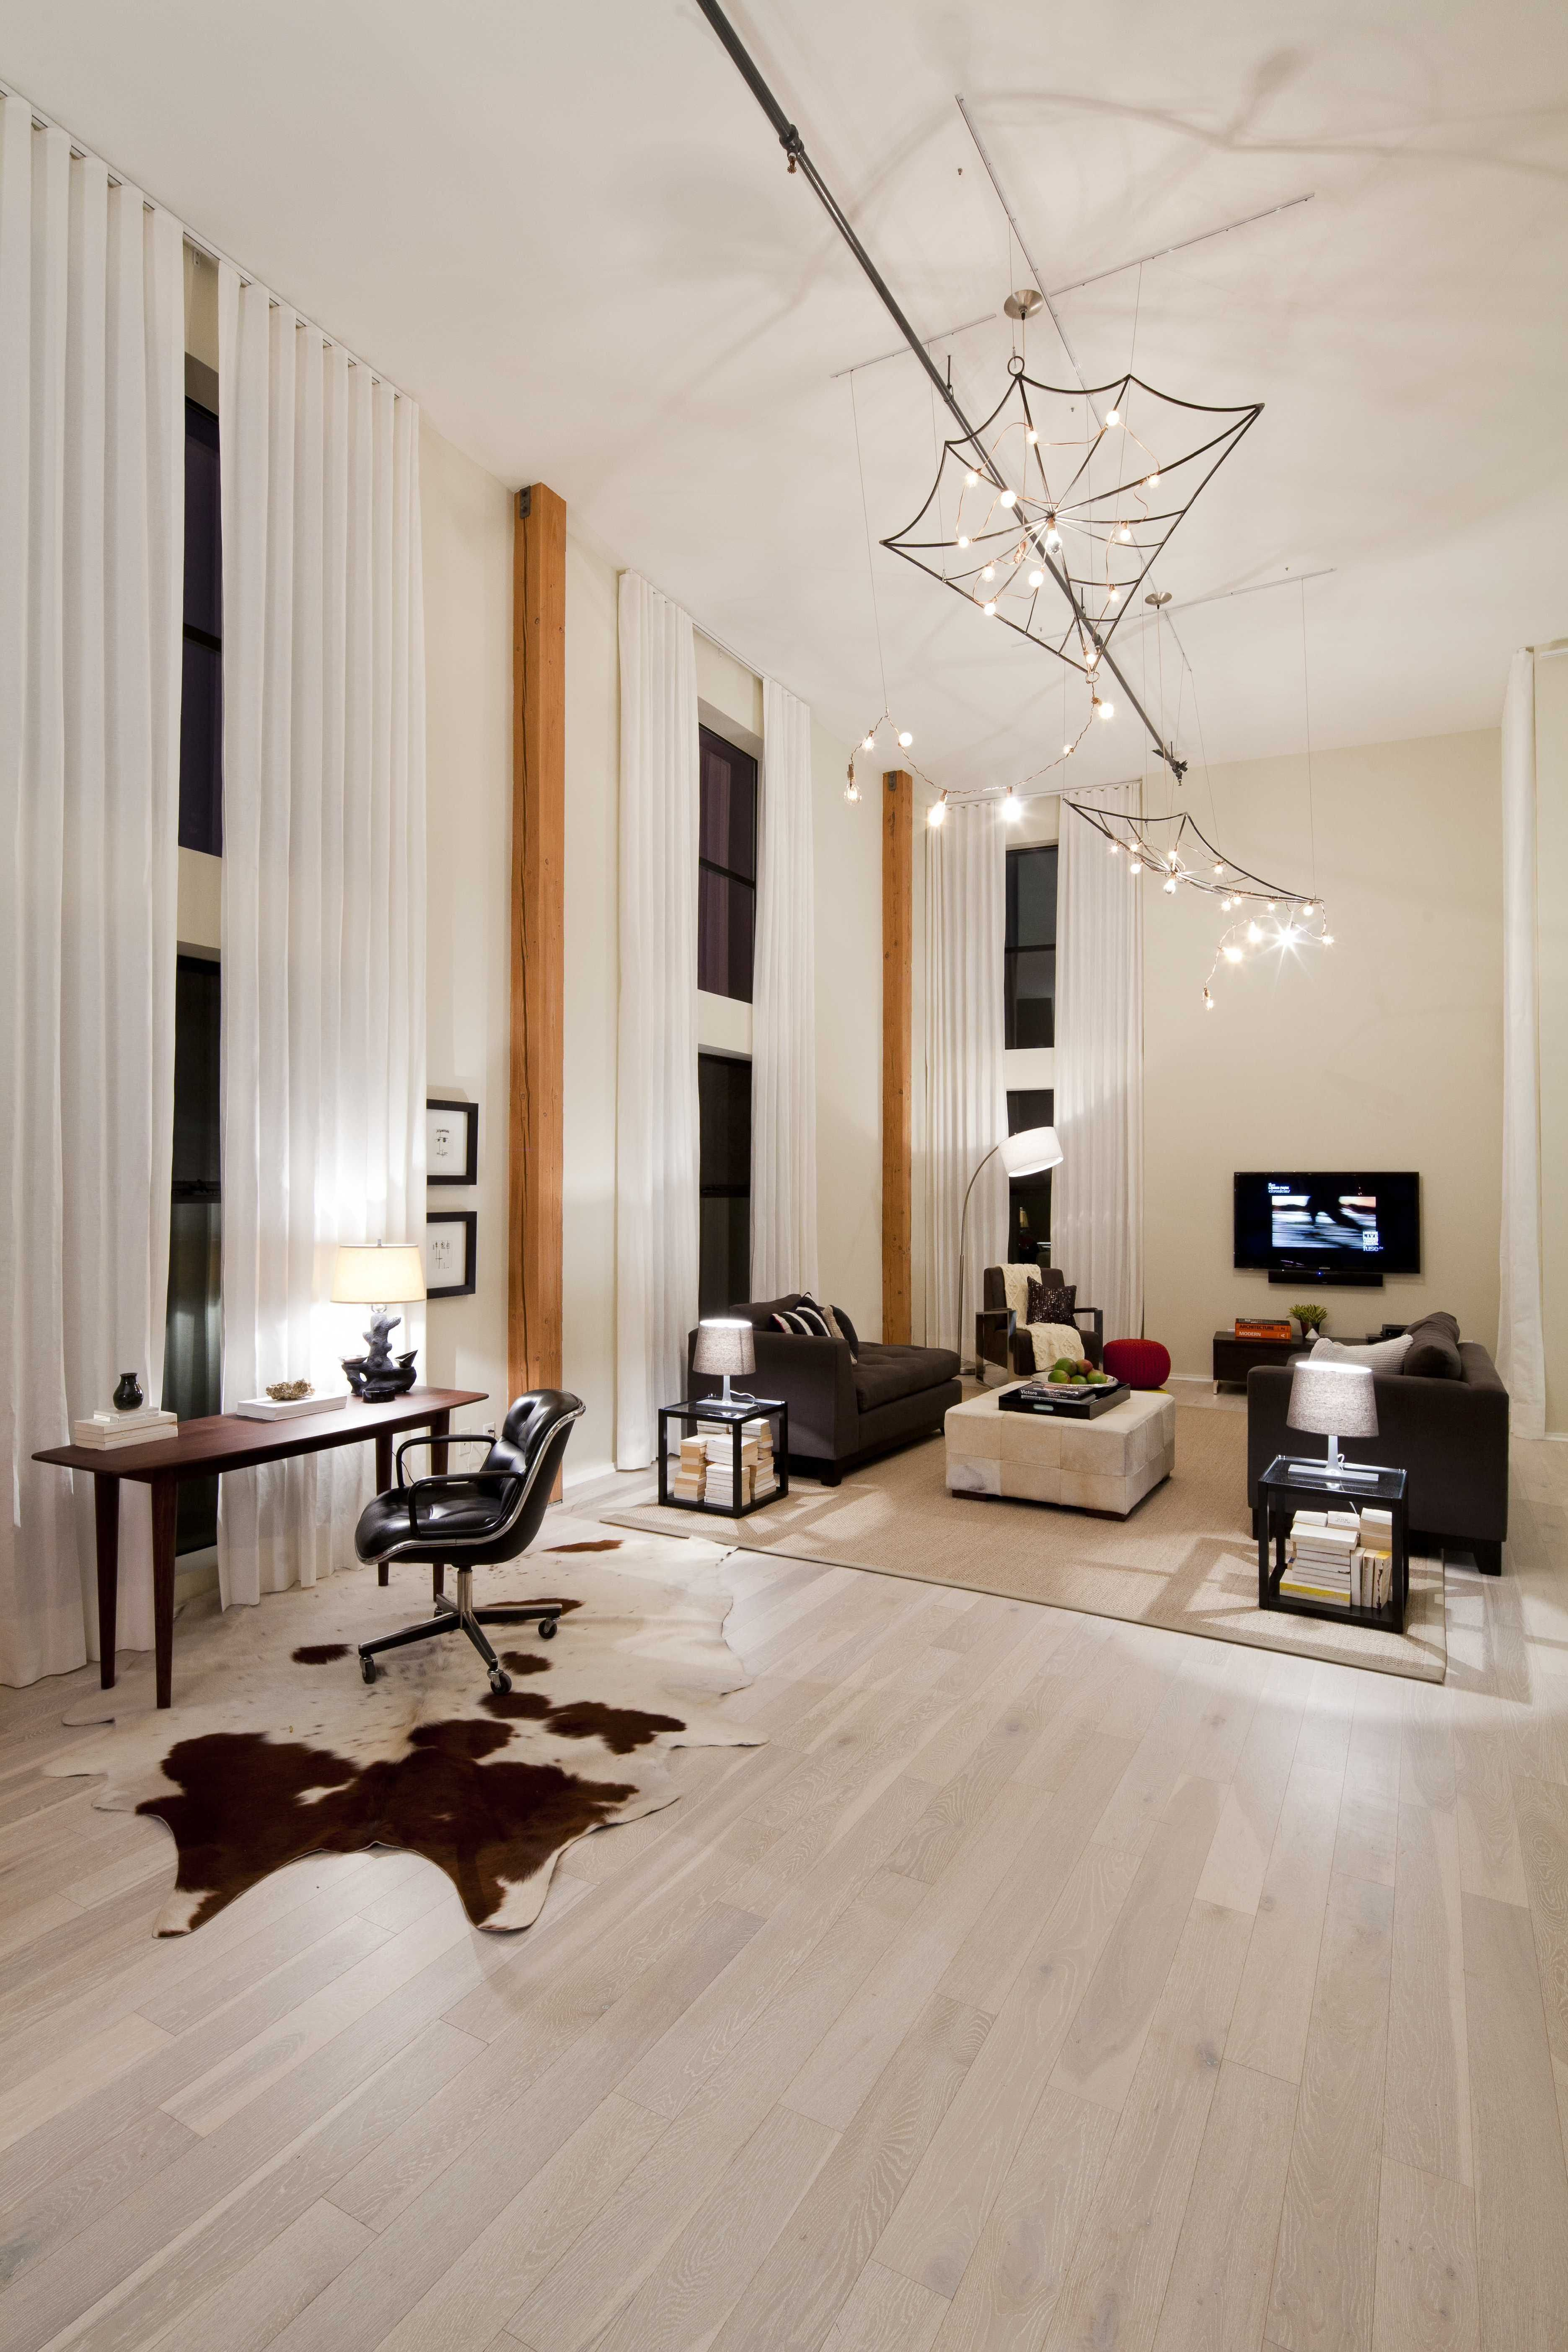 light hardwood floor - Google Search | New house remodel ideas ...